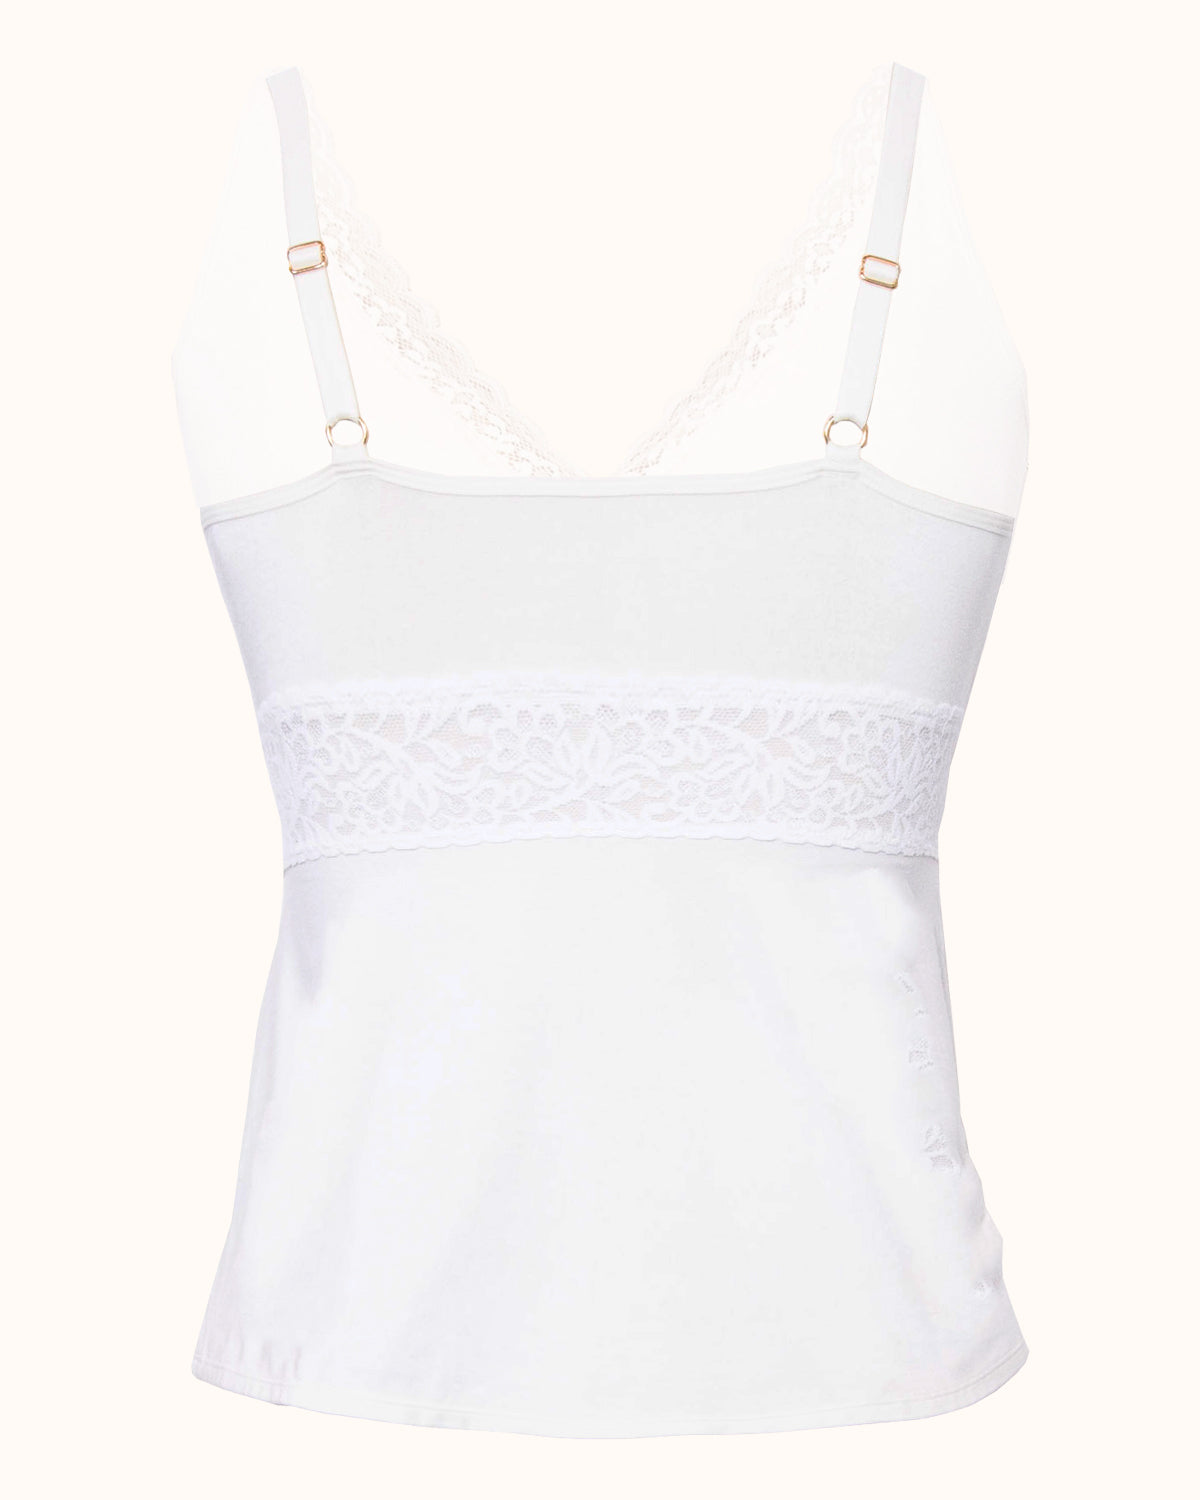 Ivory, pocketed camisole with wireless cups, wrap front design, lace v neck and adjustable straps.